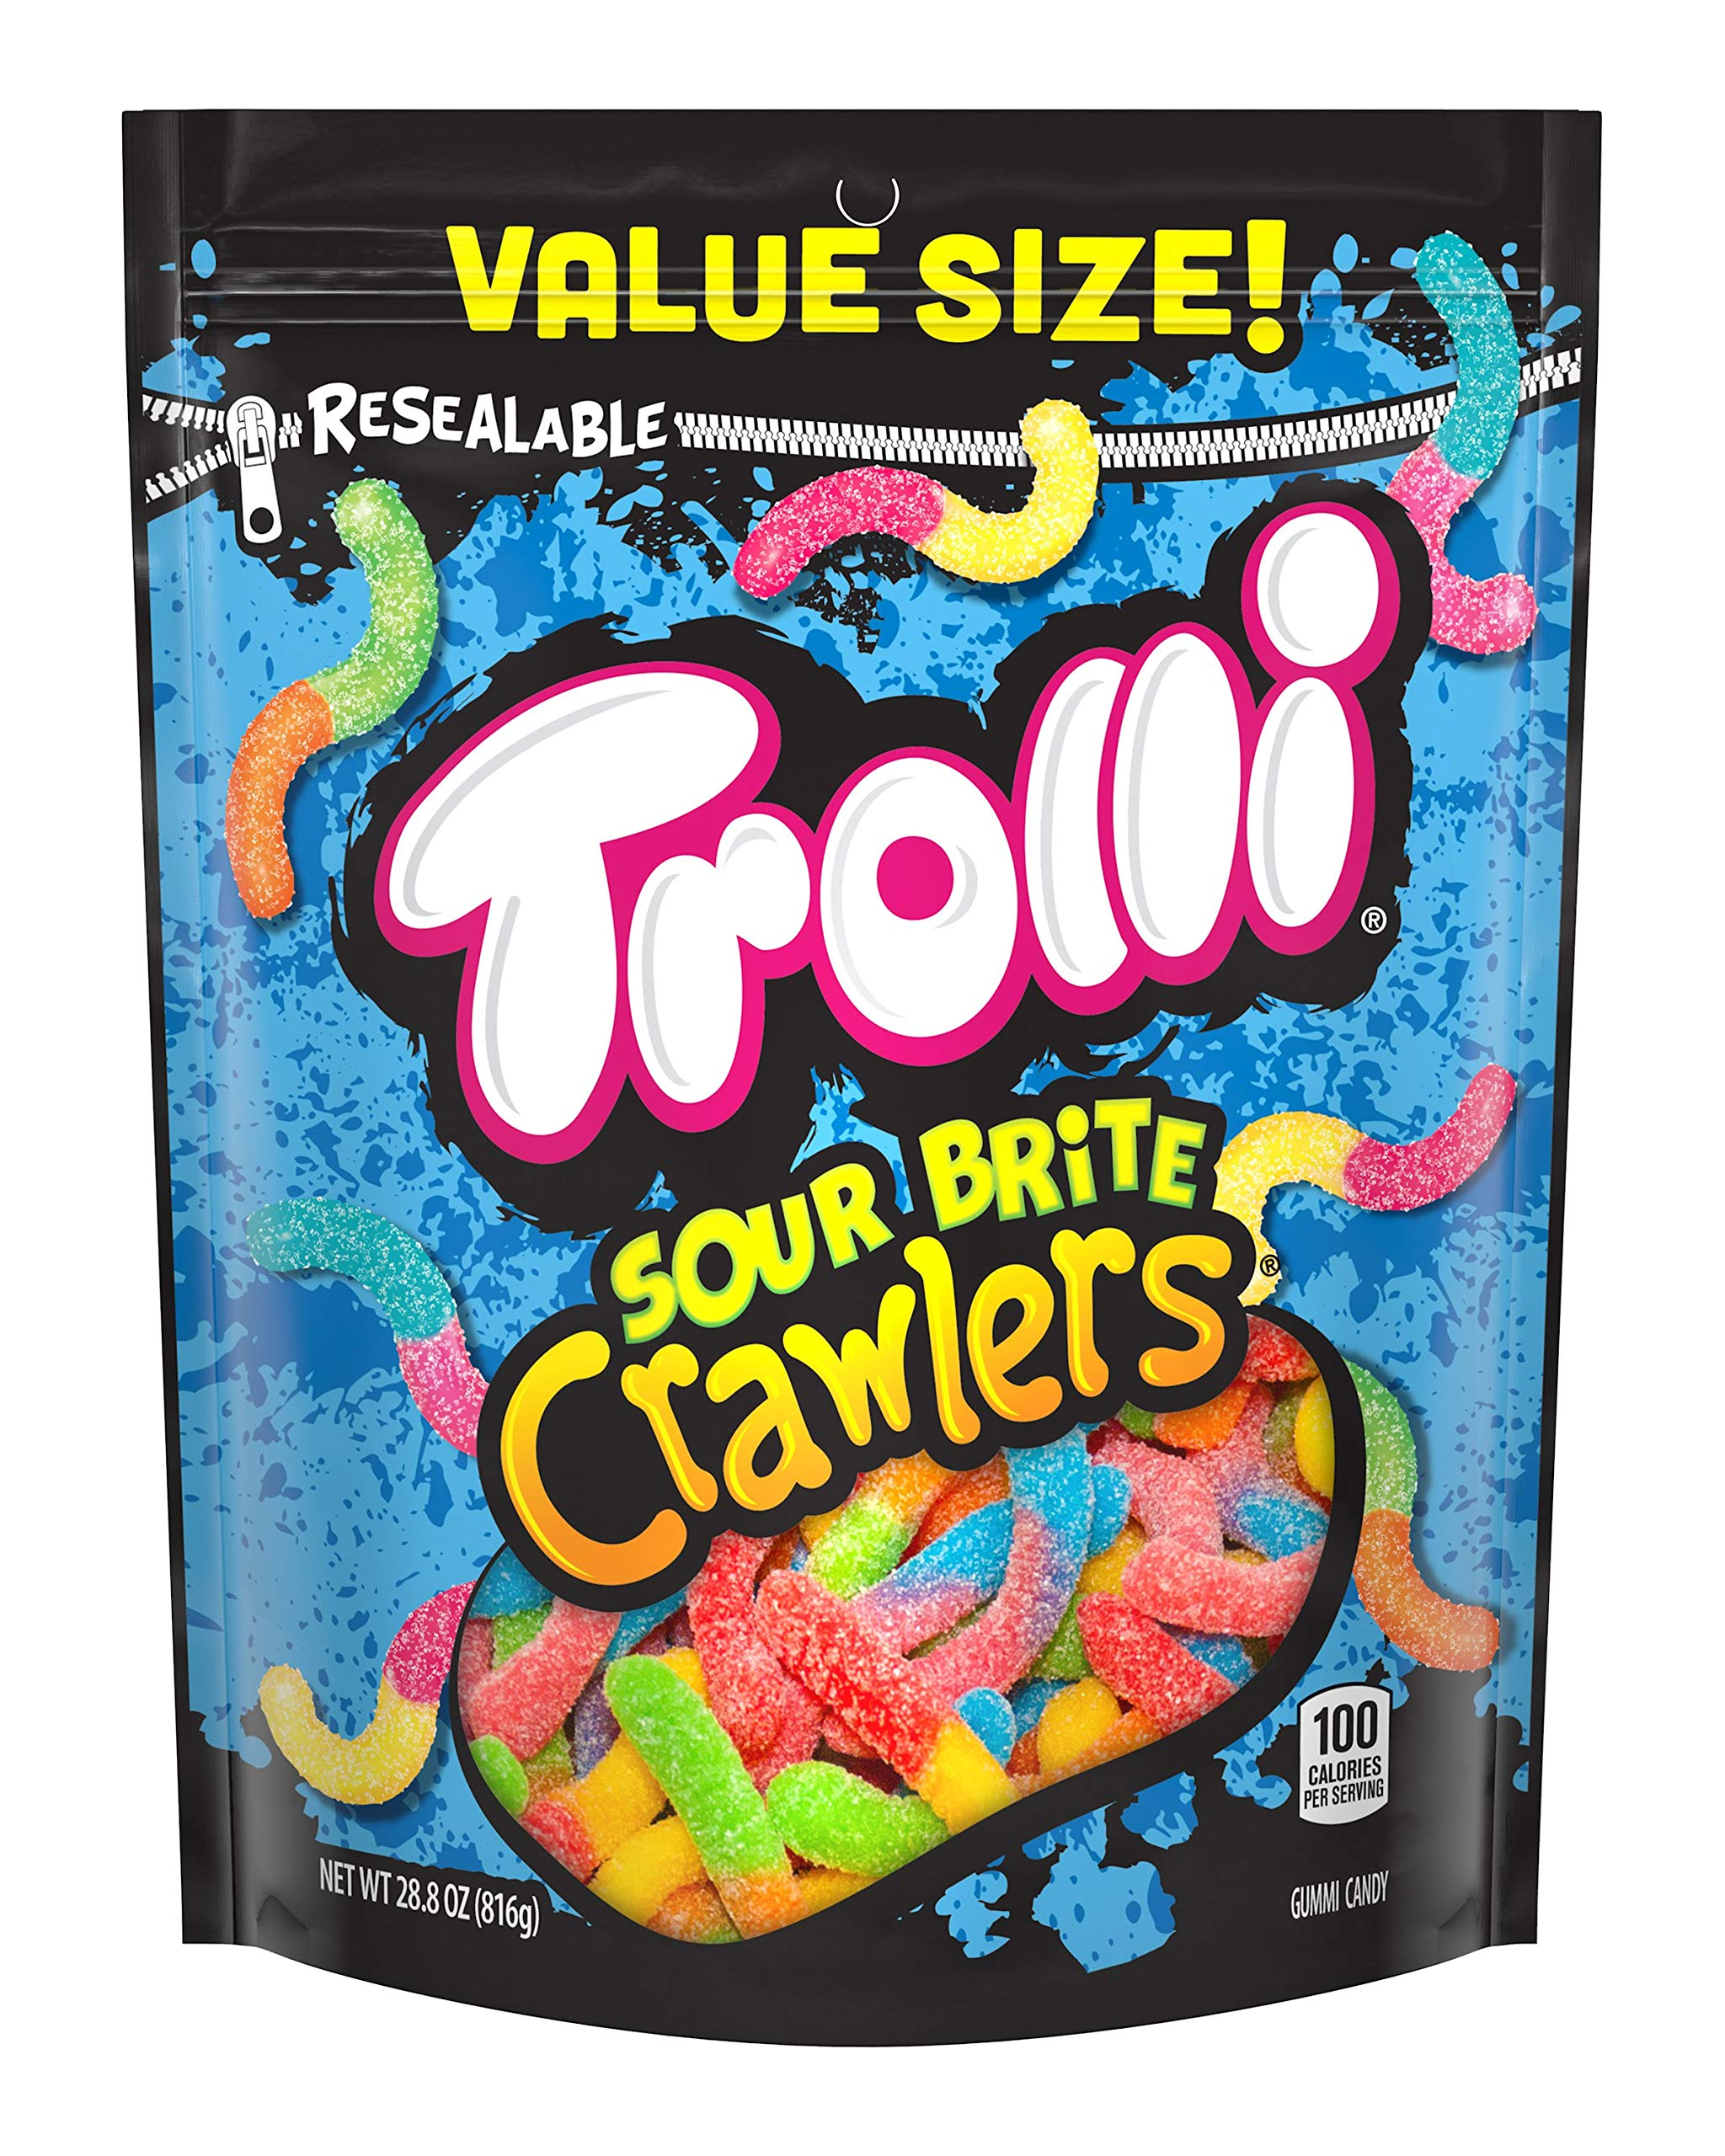 Trolli Sour Brite Crawlers Gummy Worms, Sour Gummy Worms, 28.8 Ounce by Trolli